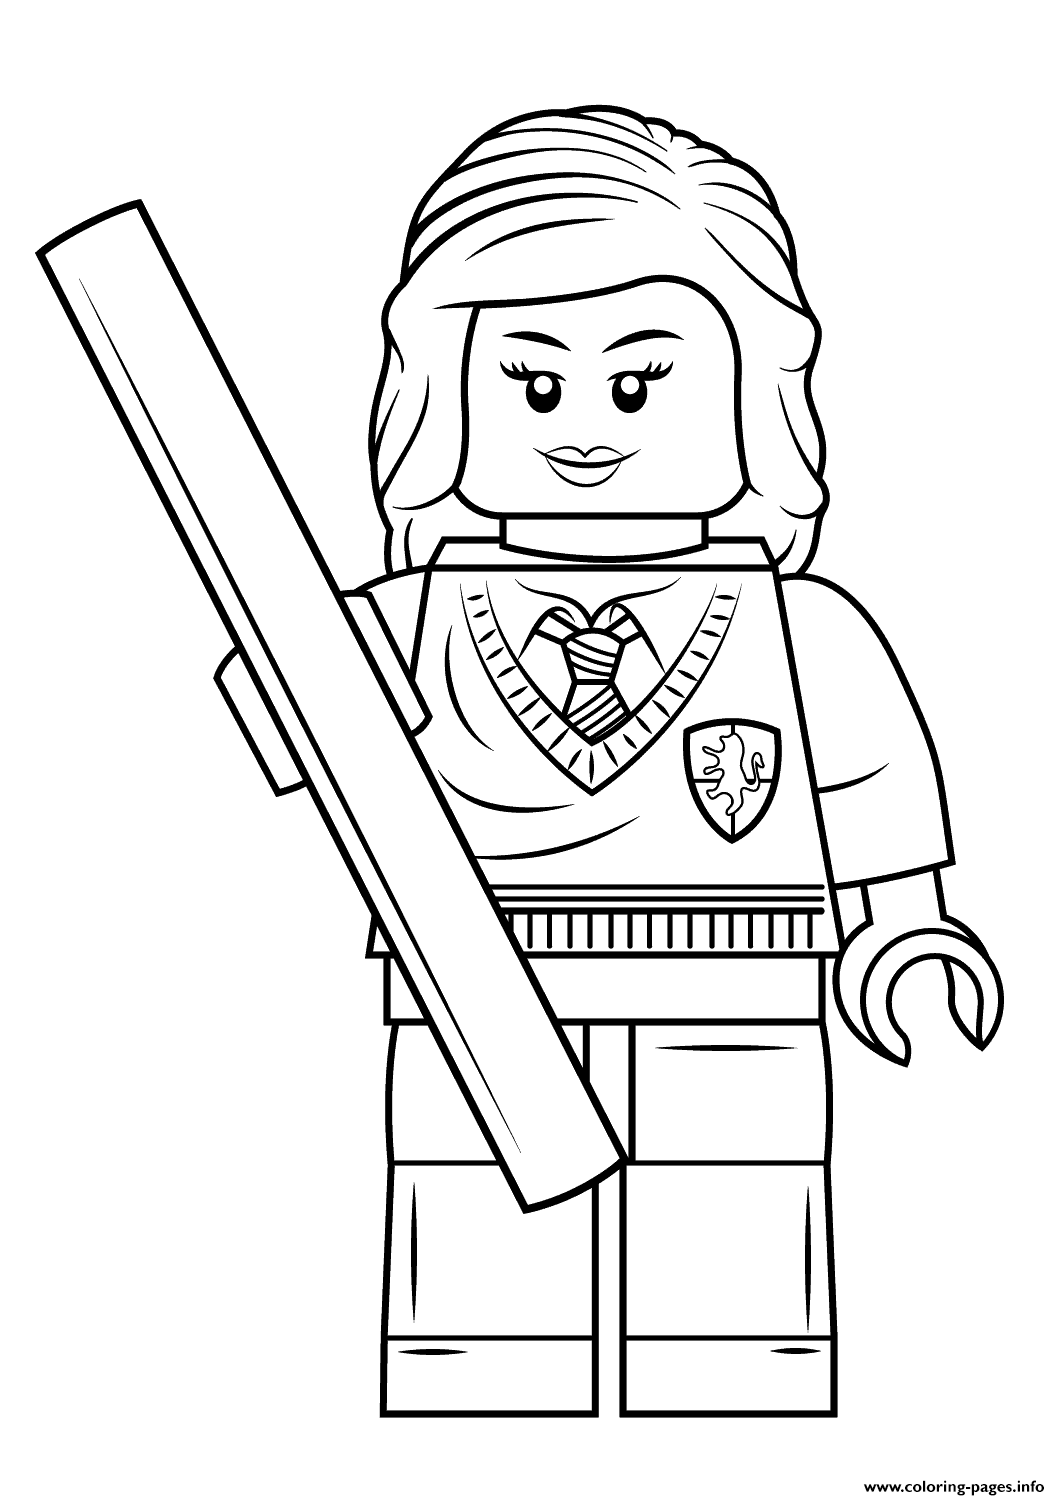 Lego Hermione Granger Harry Potter Coloring Pages